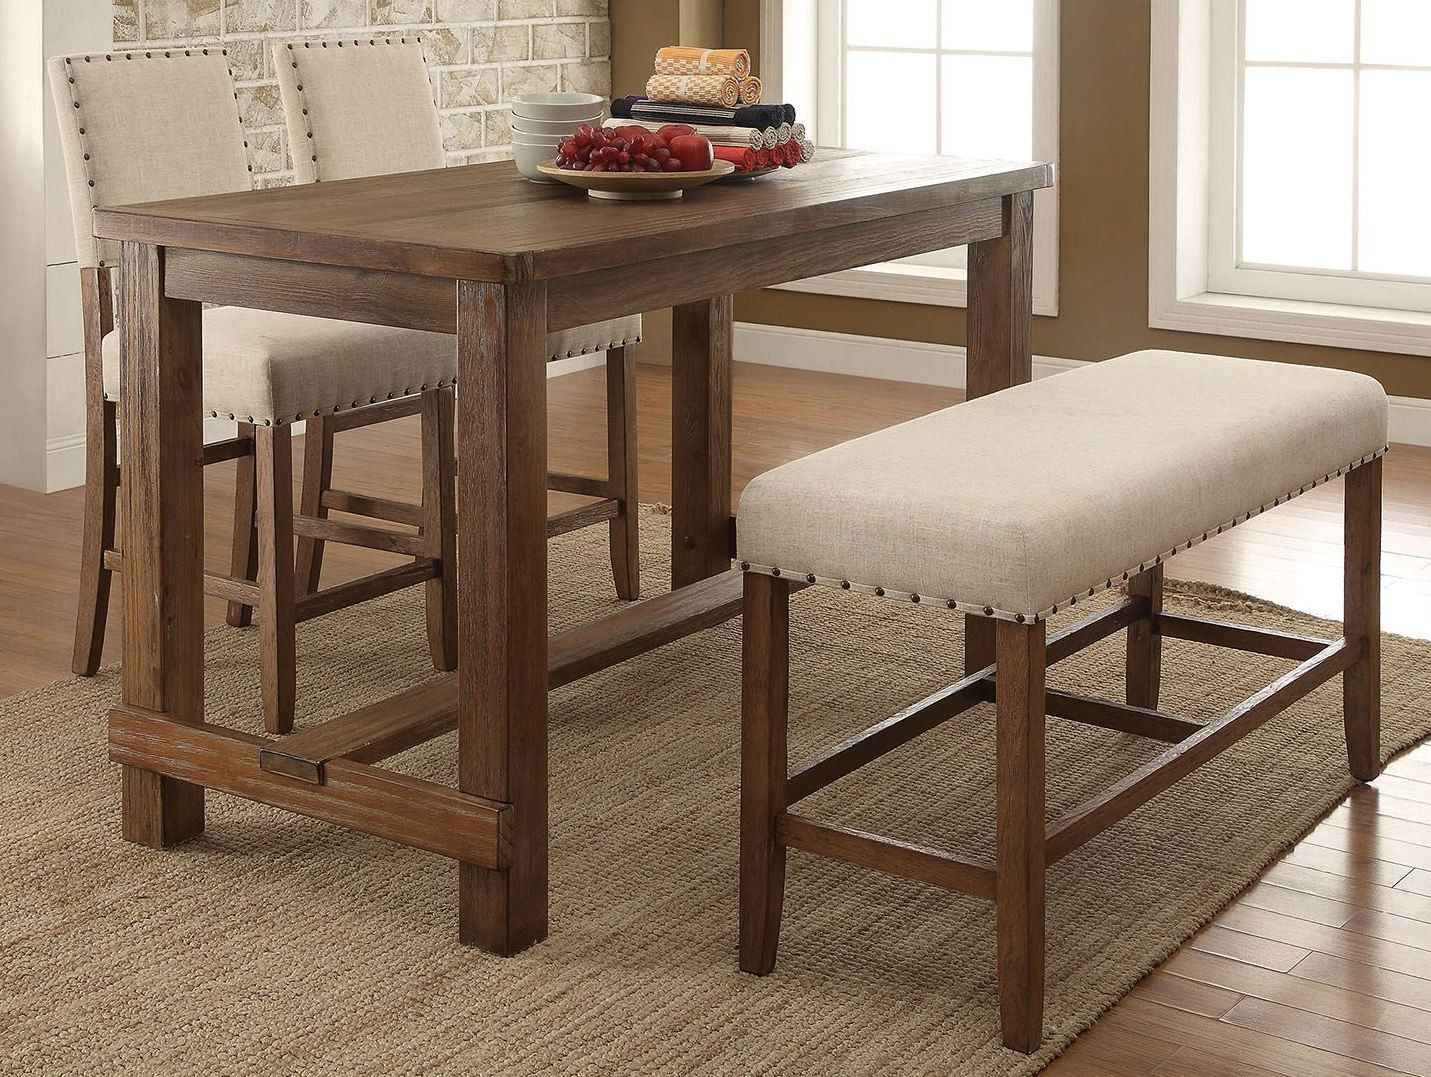 21++ Counter height dining table set with bench Best Seller